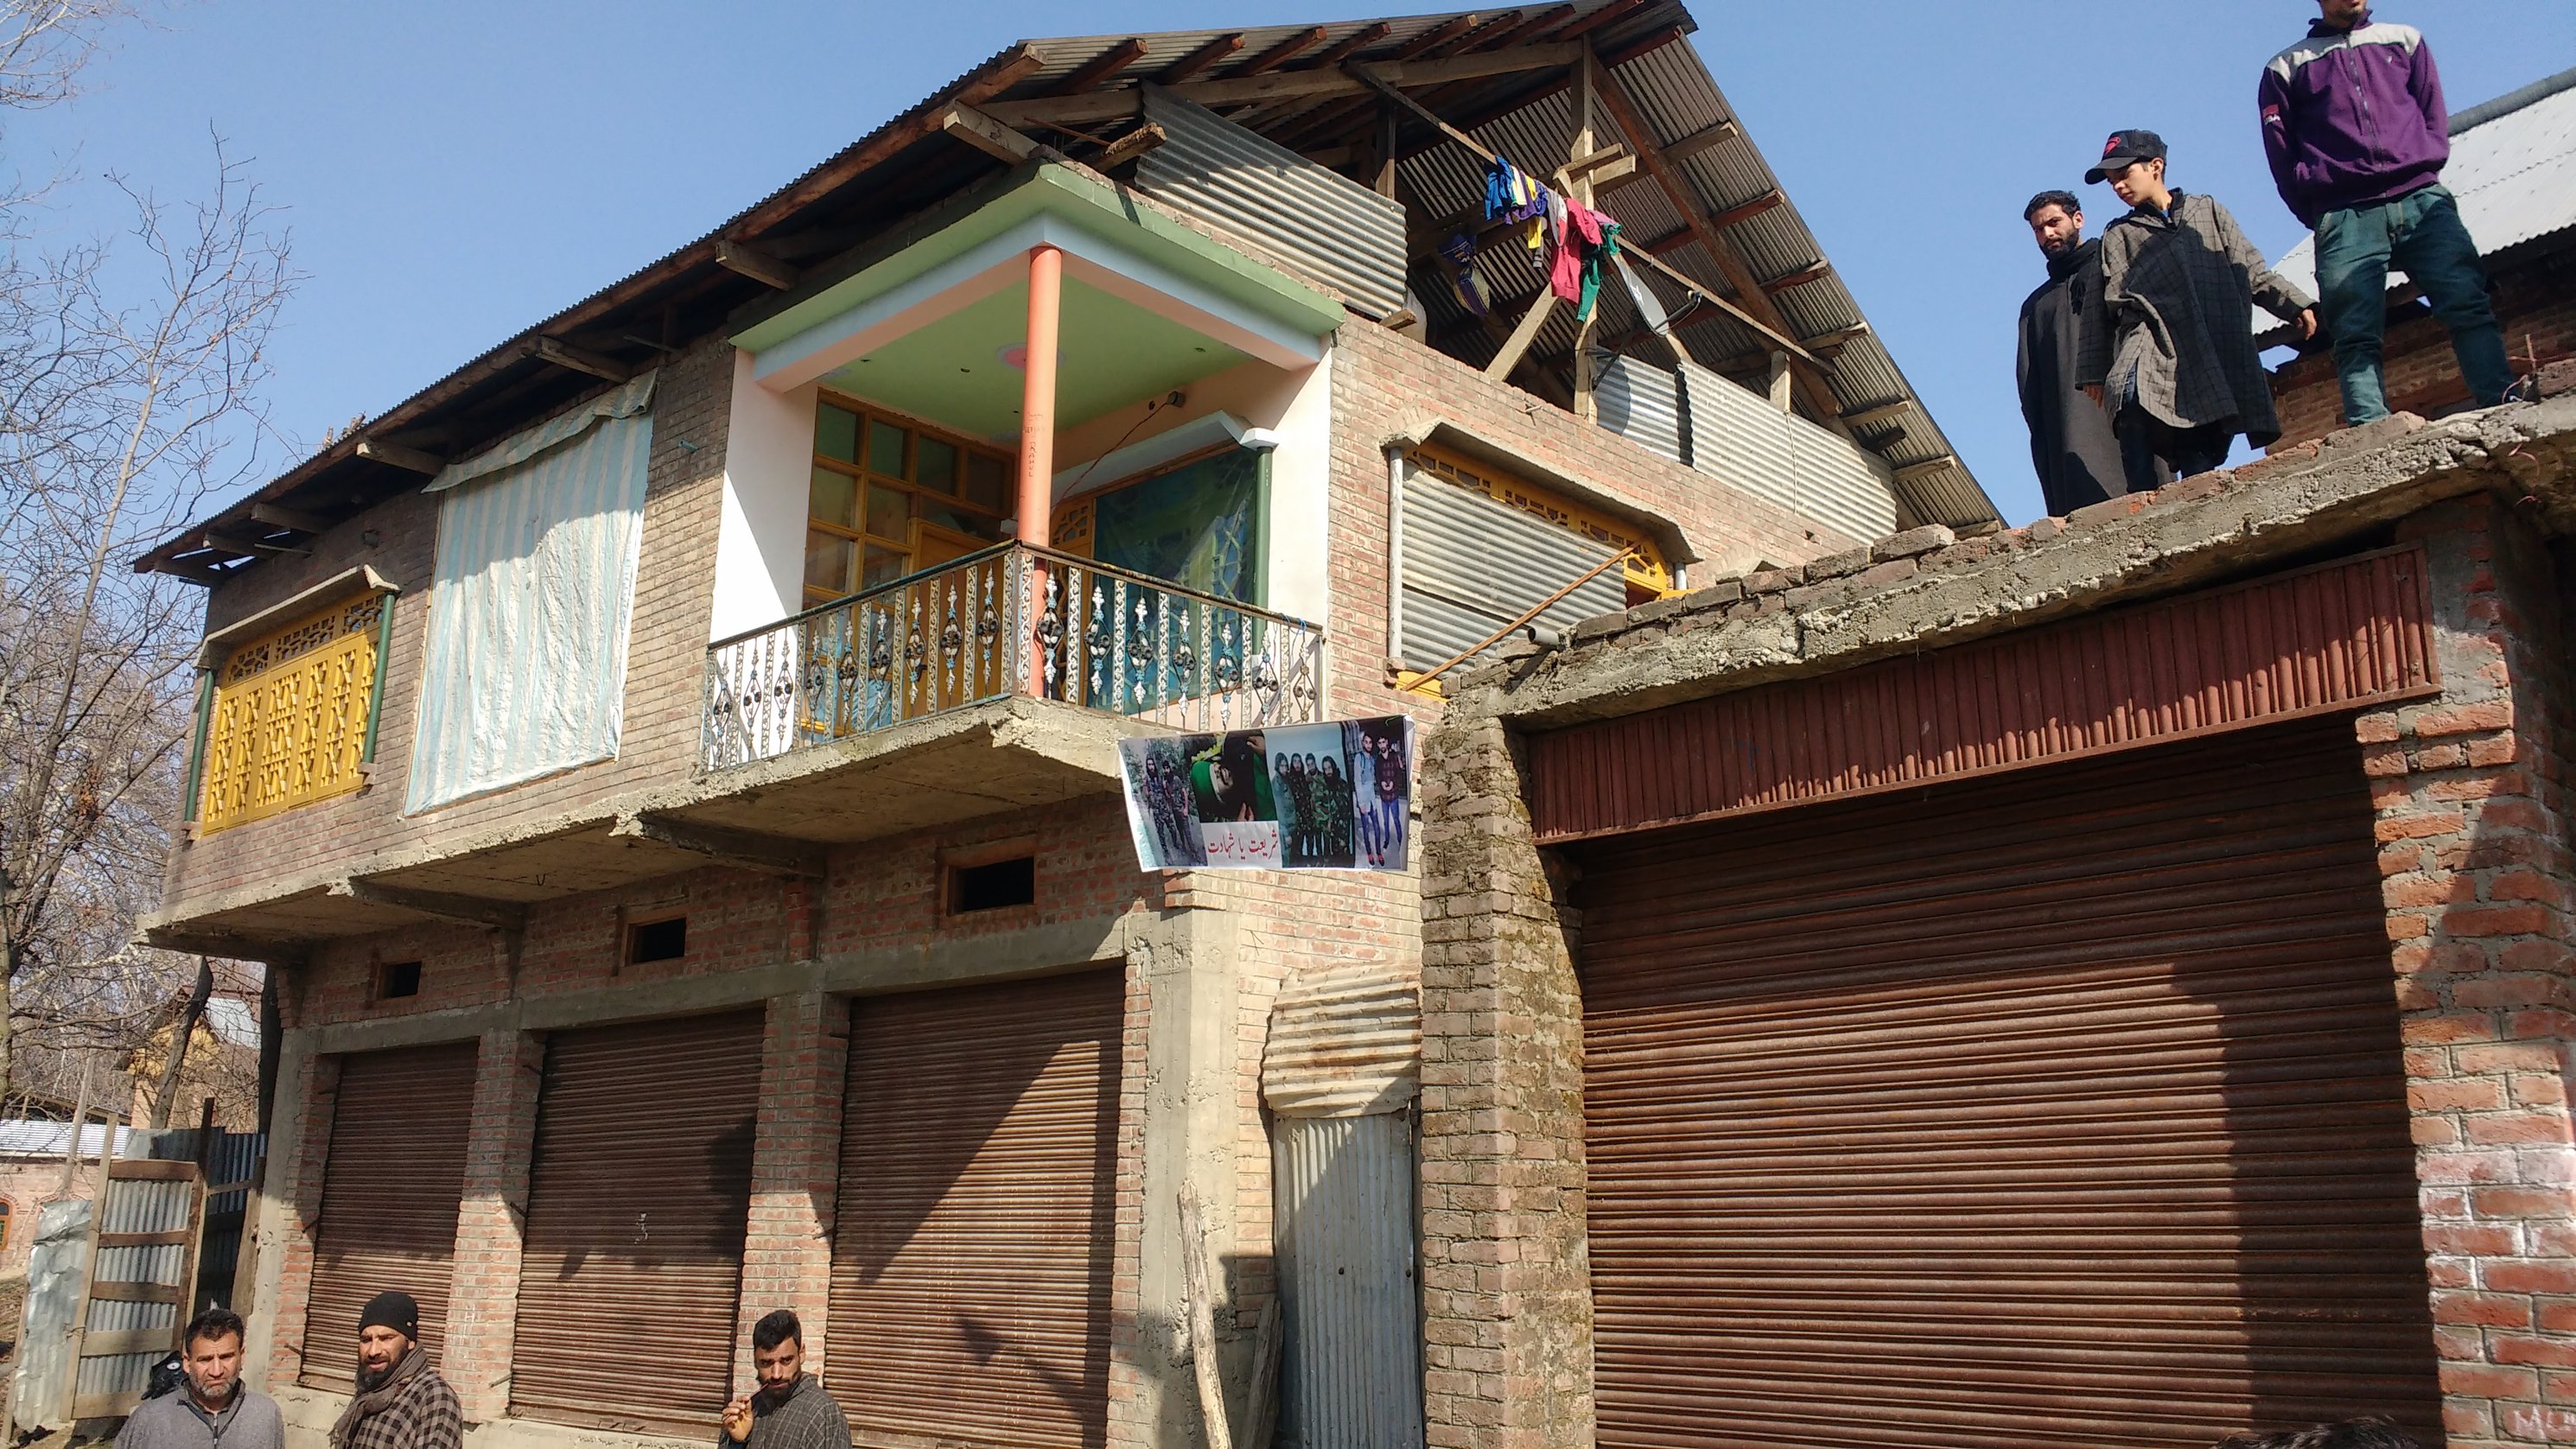 Broken windows in Ganowpora village. Image: Rayan Naqash